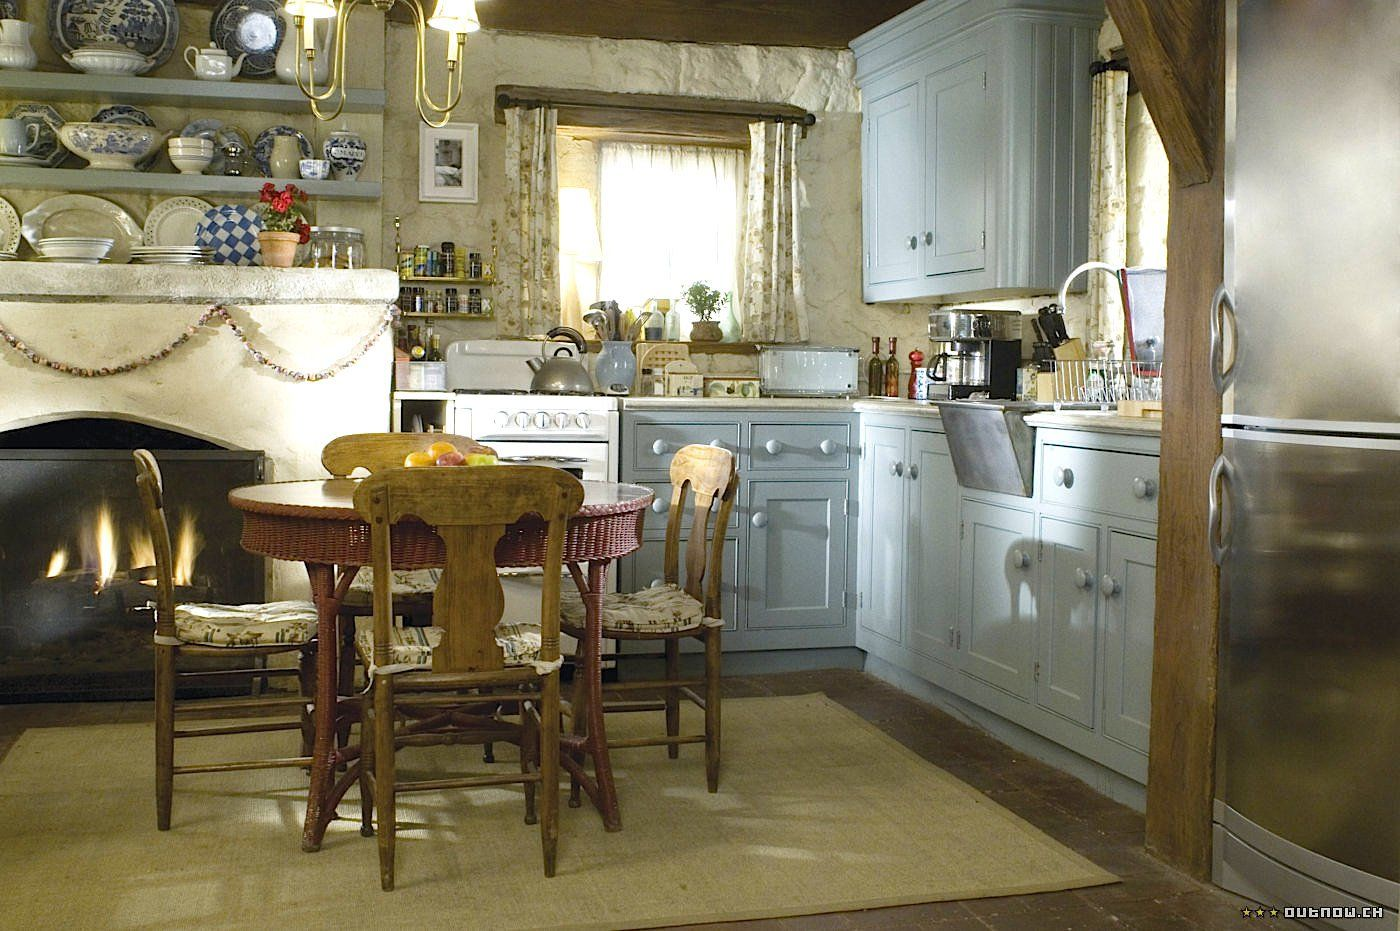 Get That Look The Holiday English Cottage Linda Merrill English Cottage Kitchens Cottage Kitchen Rustic Kitchen